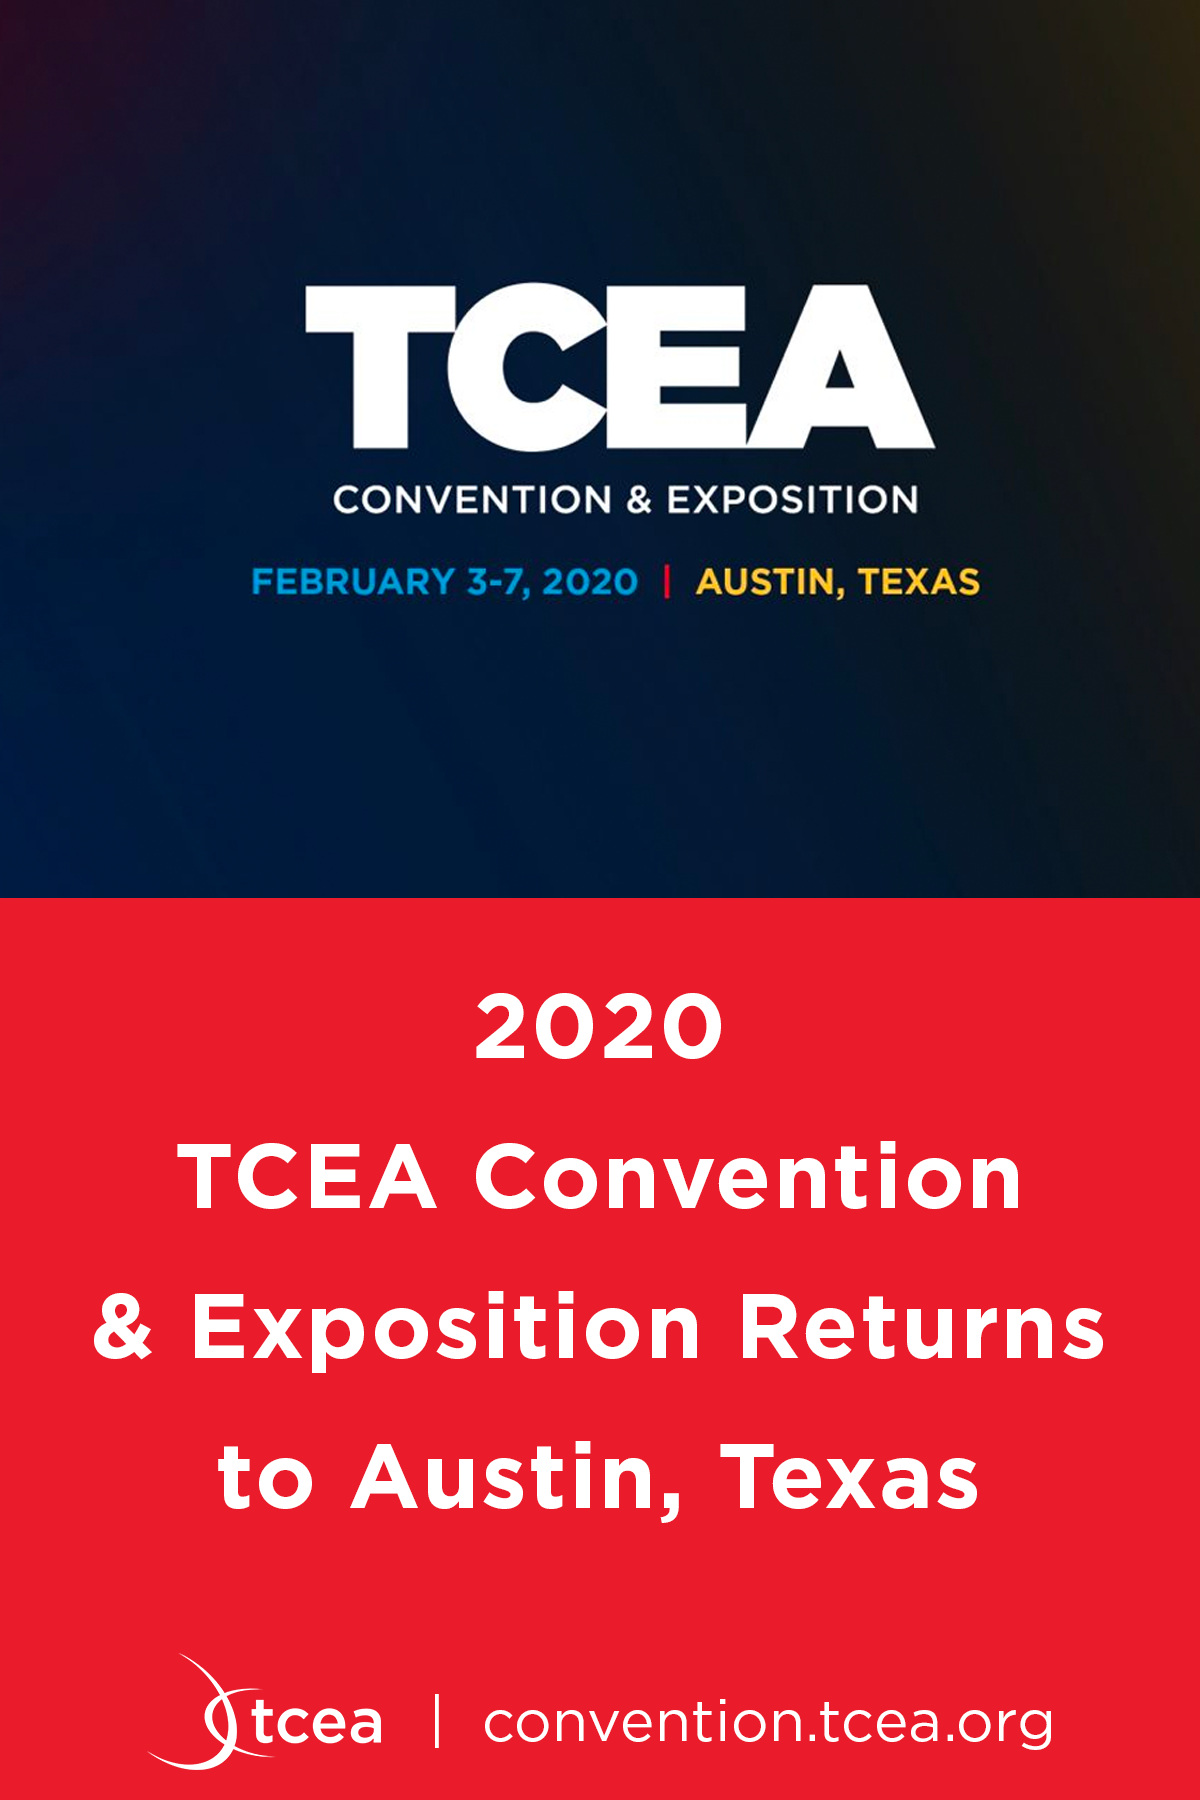 Austin Event Calendar 2020 Mark your calendars. The TCEA Convention & Exposition will be back